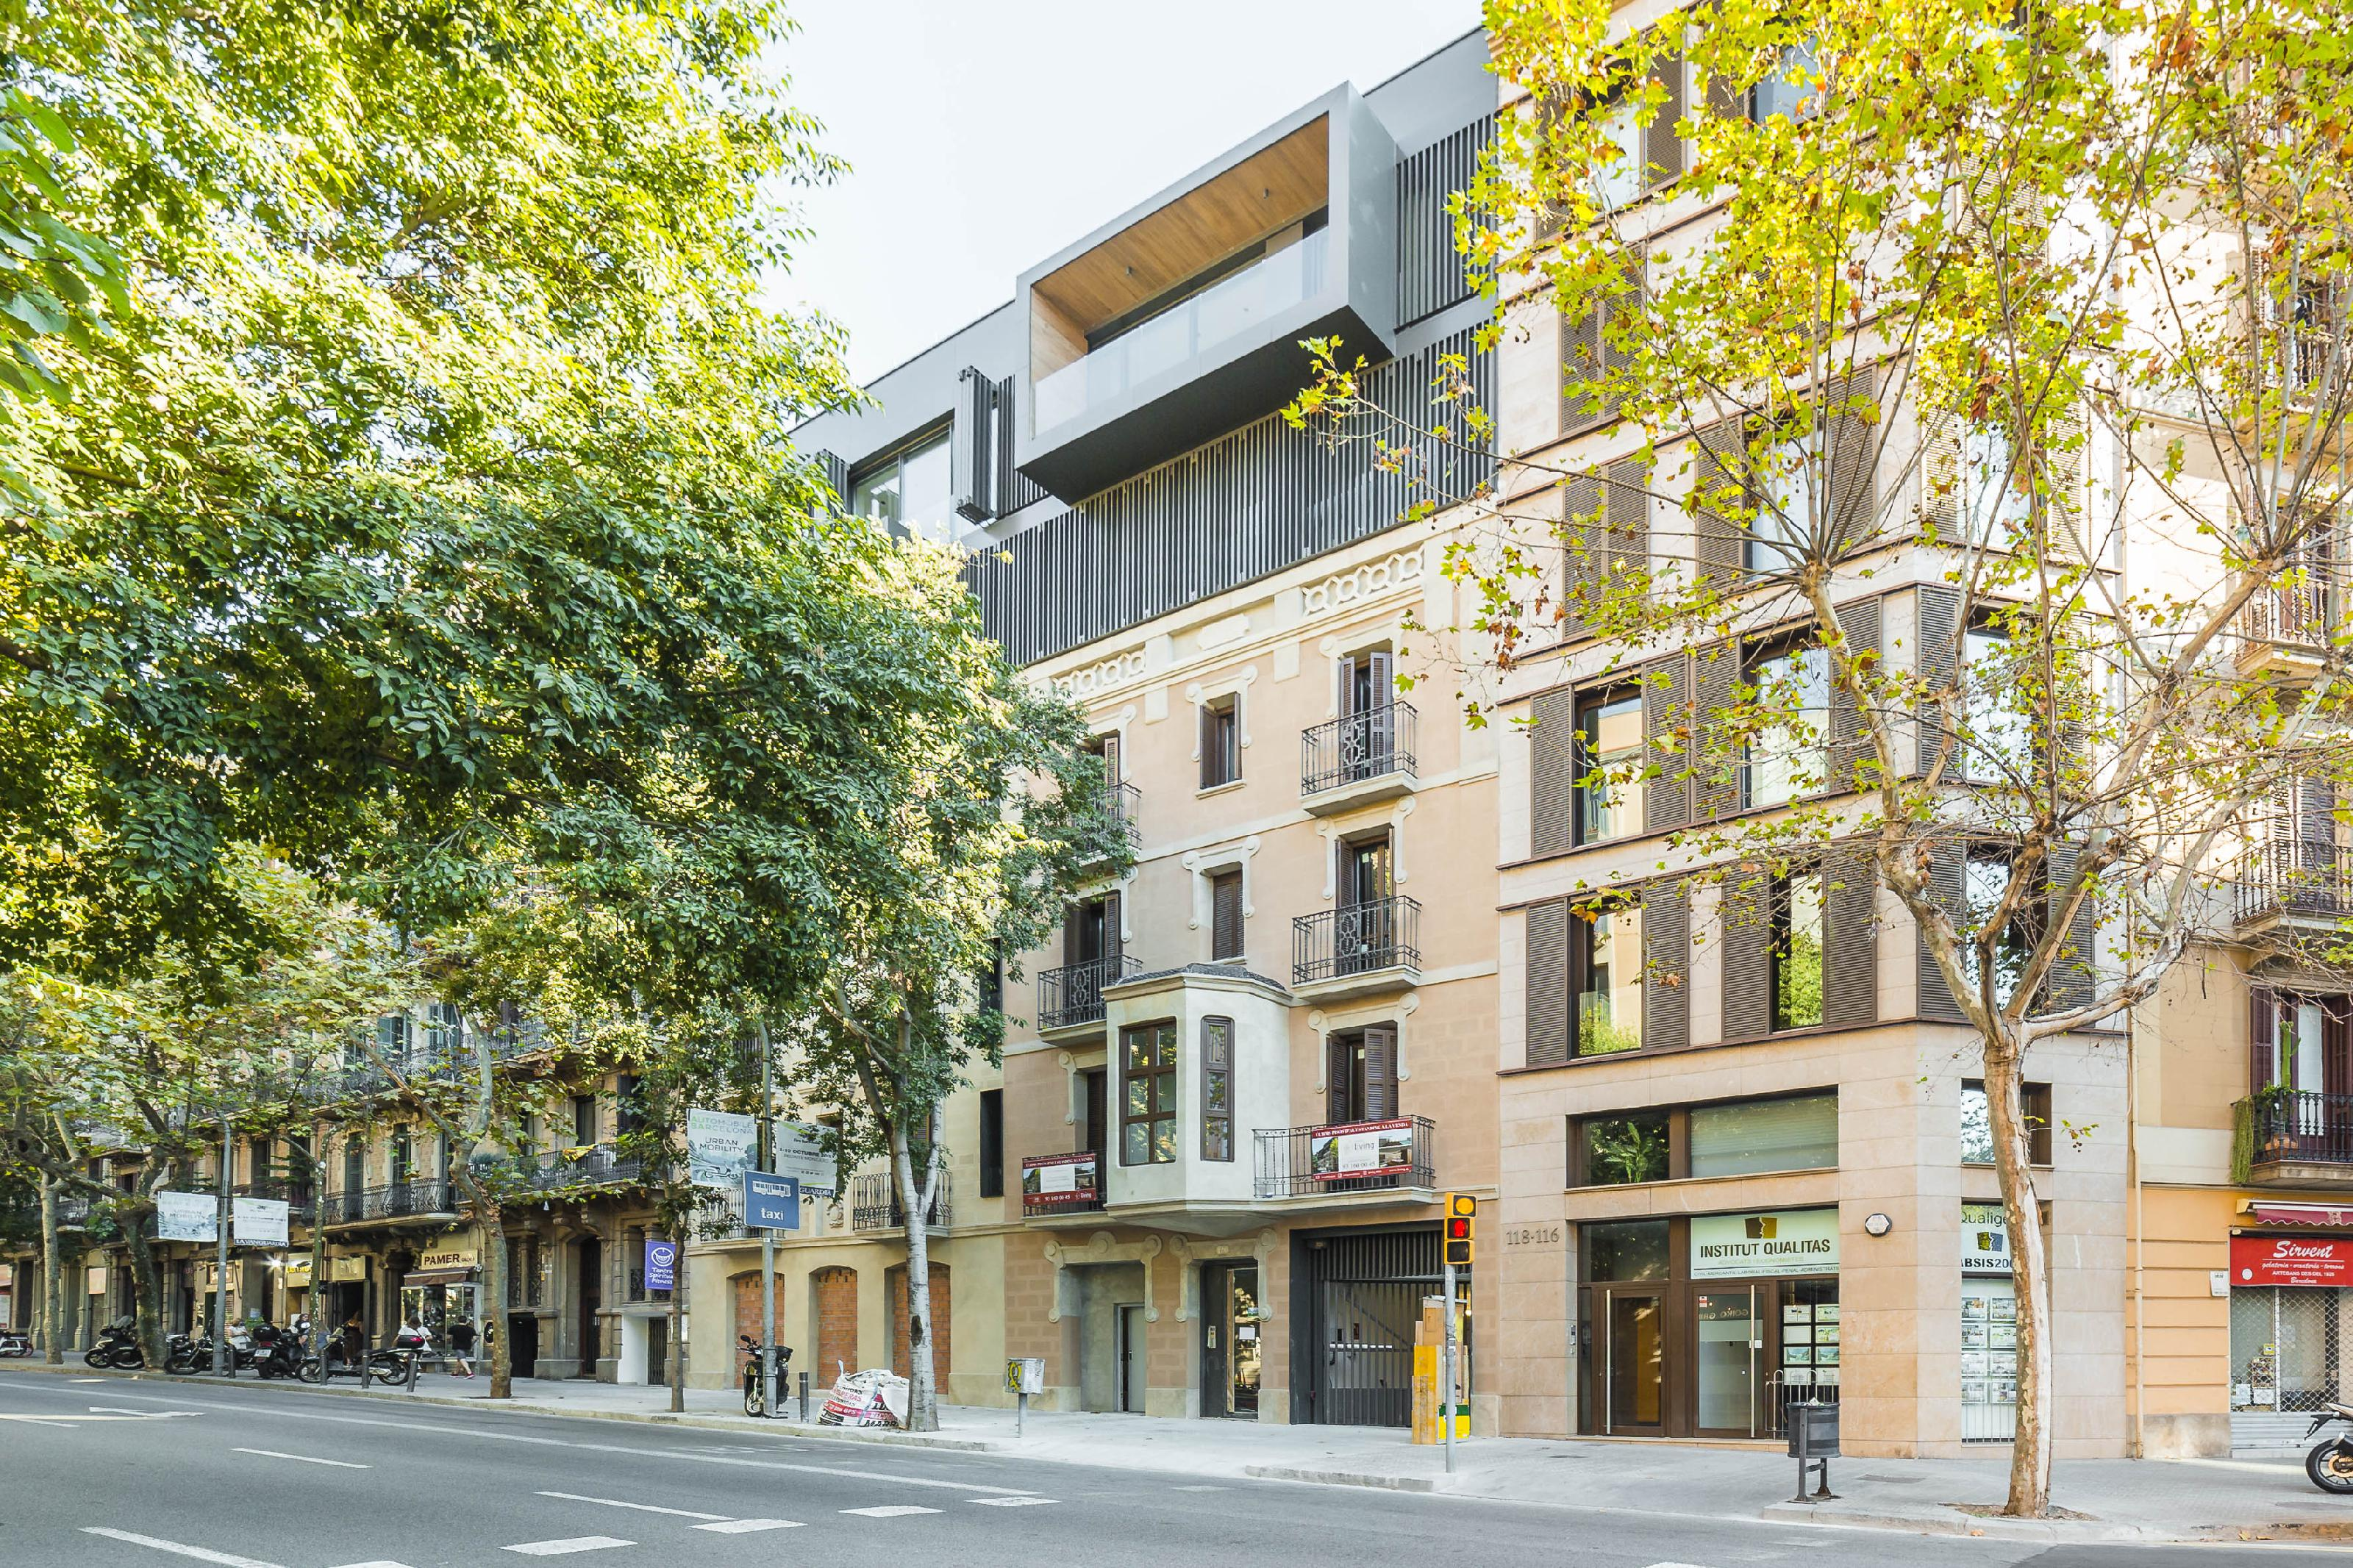 182474 Apartment for sale in Eixample, Old Left Eixample 3